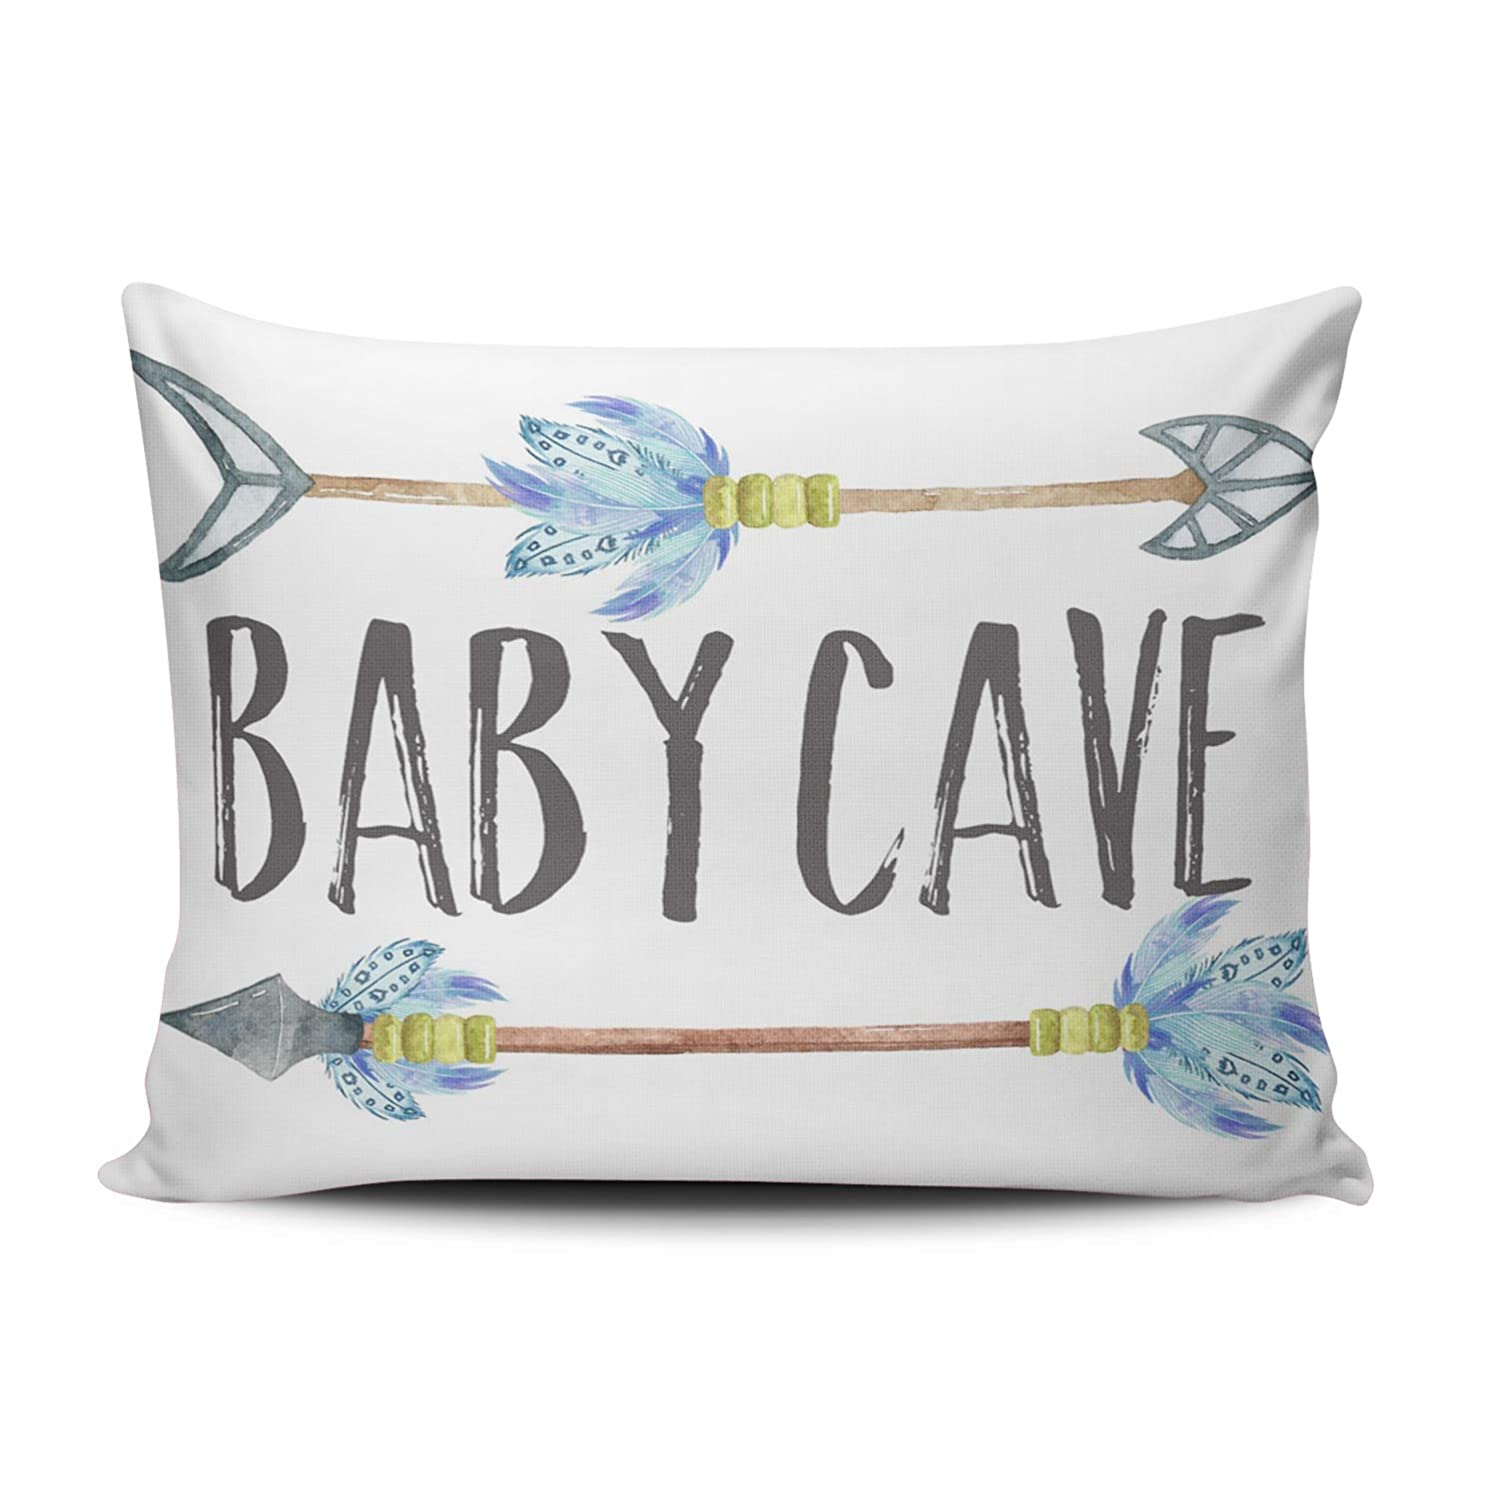 ONGING Decorative Pillowcases Blue Gray and White Baby Cave Boho Tribal Boy Nursery Customizable Cushion Rectangle Boudoir Size 12x16 Inch Throw Pillow Cover Case One Sided Design Printed